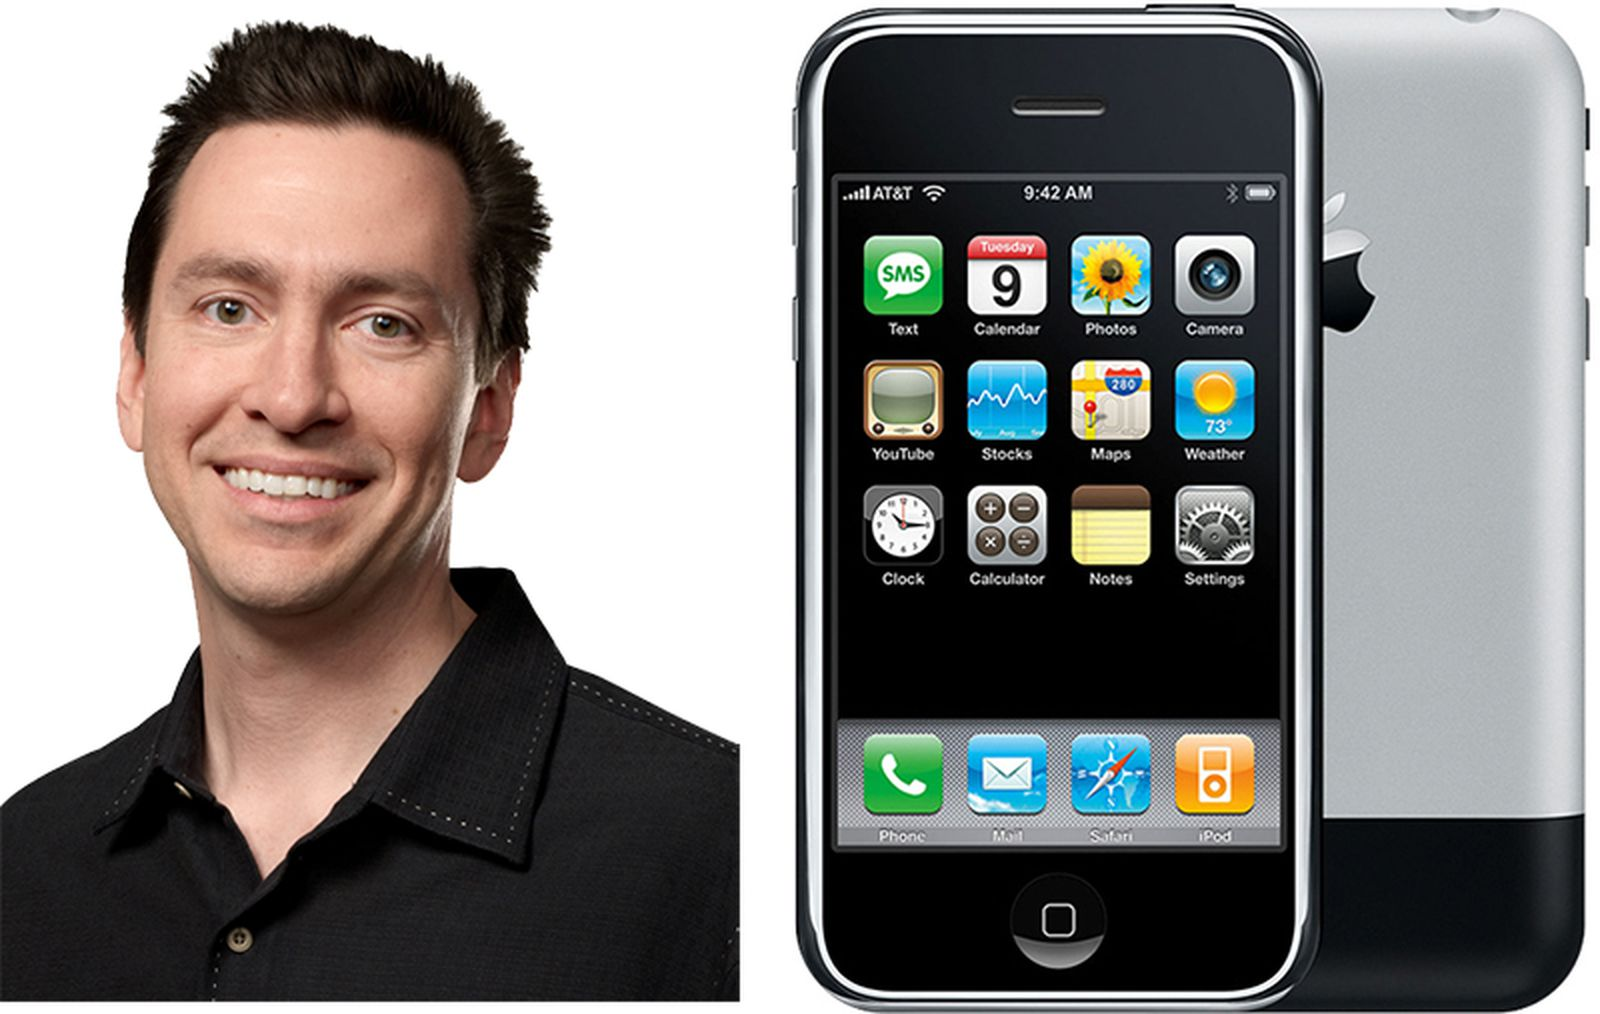 photo of Epic Games 'Attempting to Locate' Former iOS Chief Scott Forstall to Testify in Ongoing Legal Battle with Apple image